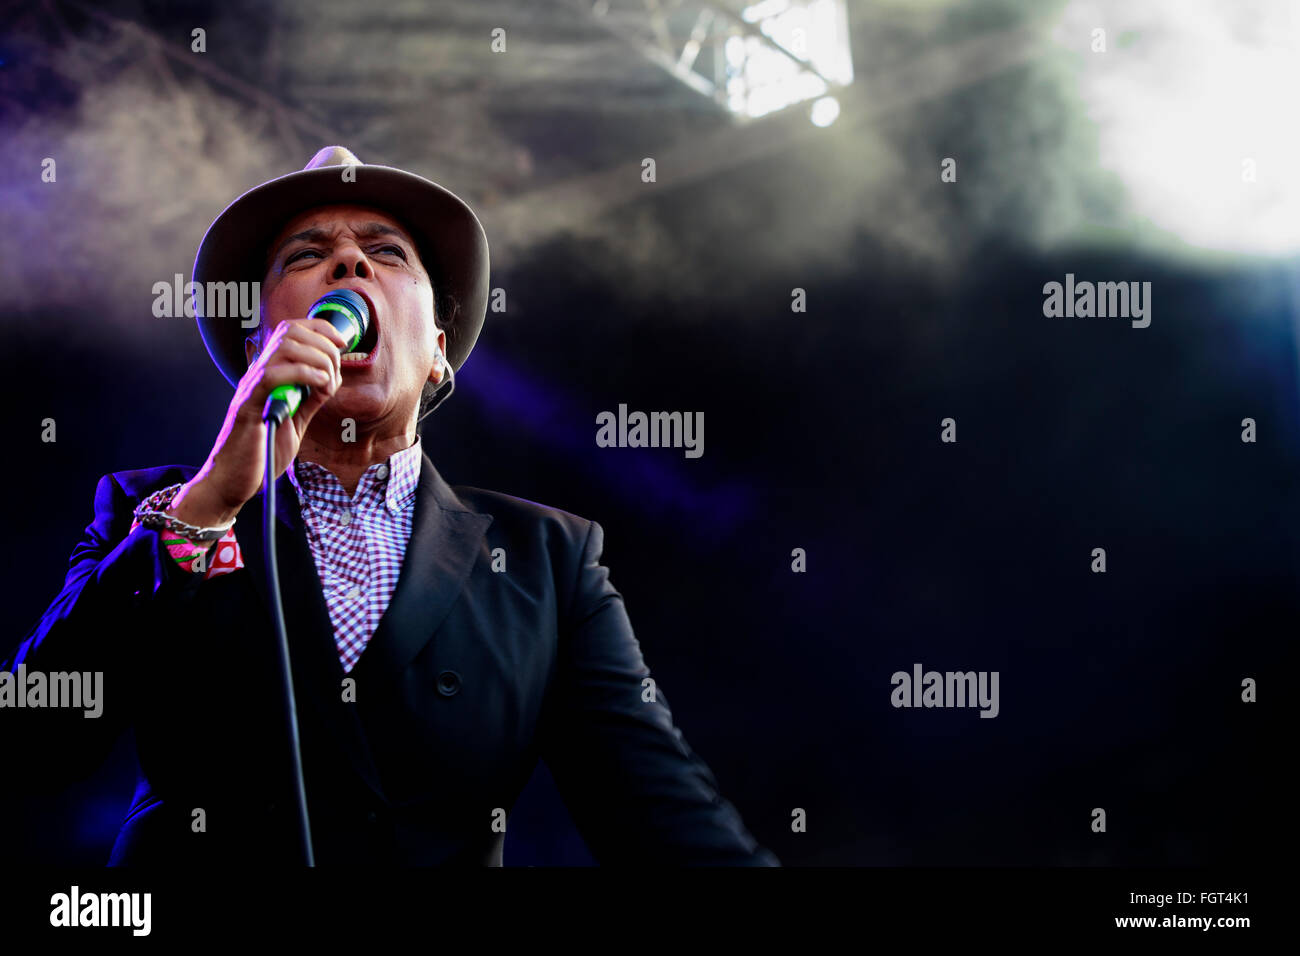 The Selecter, Village Green Music and Arts Festival, Southend-on-Sea, Essex © Clarissa Debenham / Alamy Stock Photo